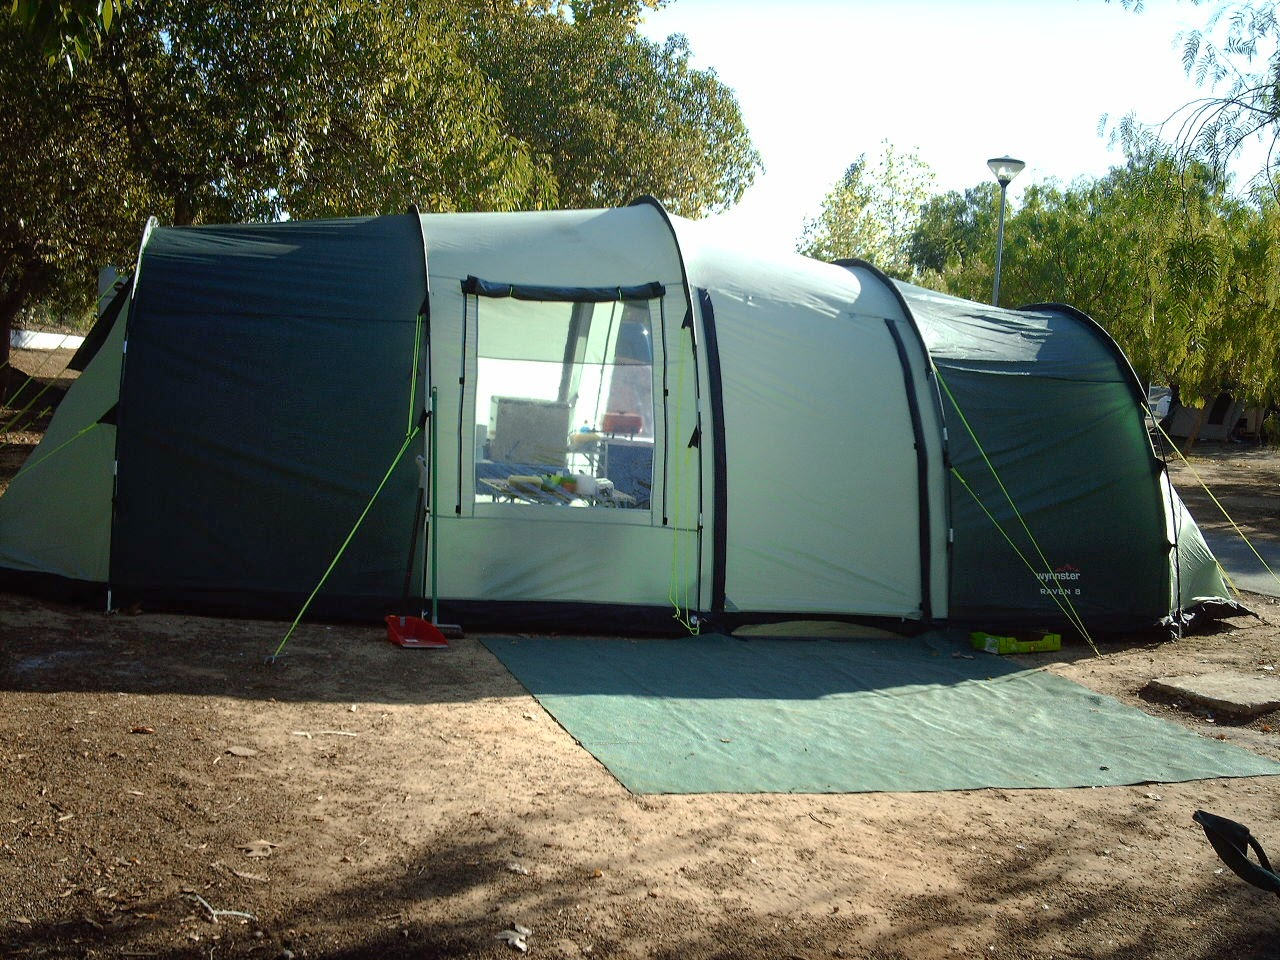 A Wynnster Raven 8 tunnel tent in good condition only used twice since purchase in 2010. In good condition it has 4 double bedrooms and a large central ... & Digame: For Sale - Tunnel Tent